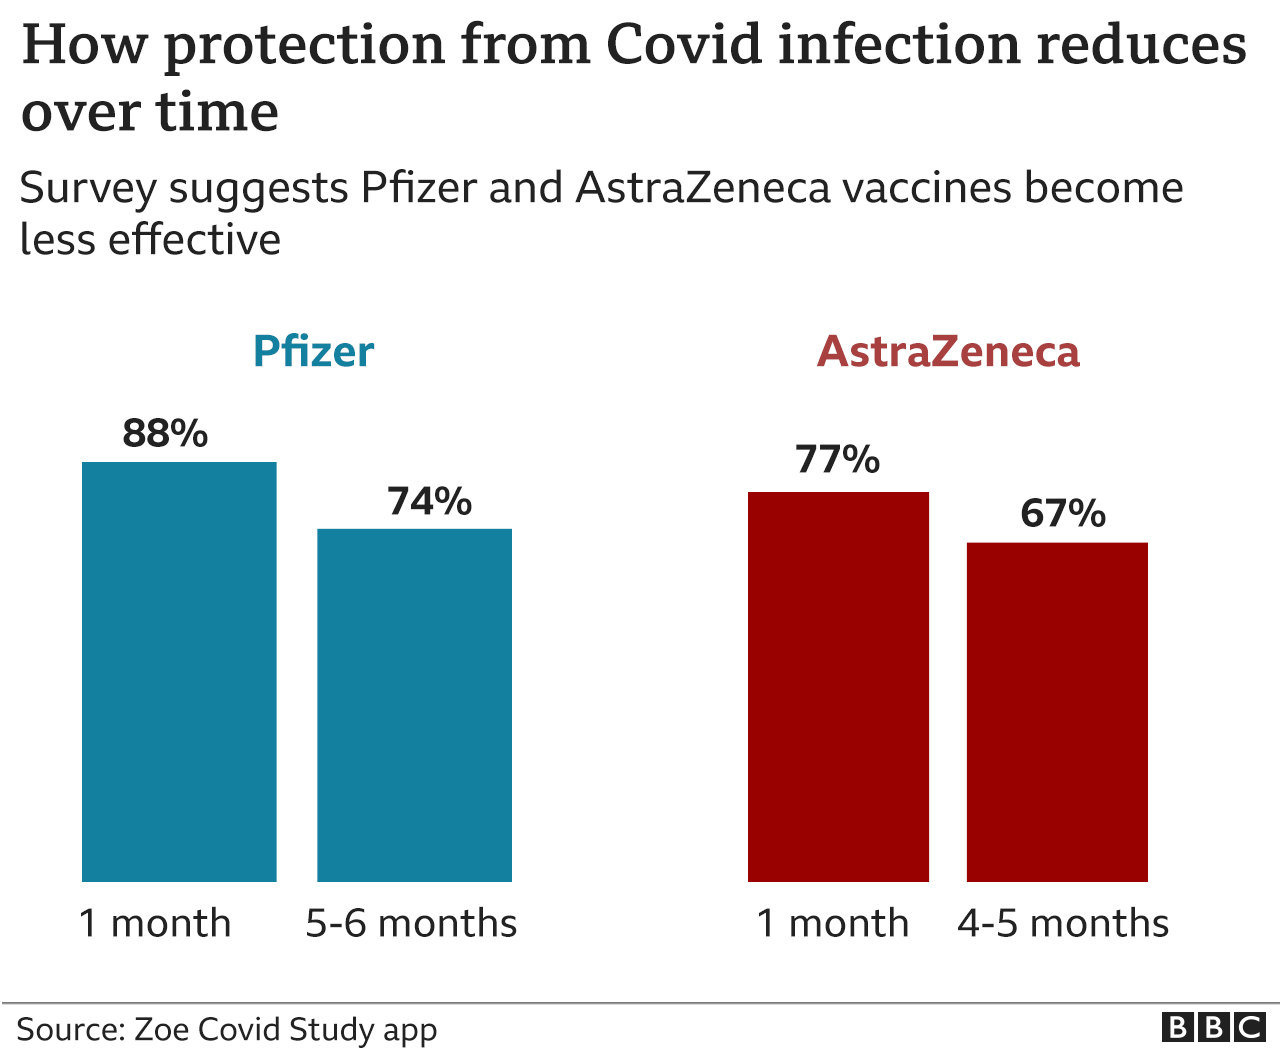 Chart shows fall in protection against infection for Pfizer and AstraZeneca